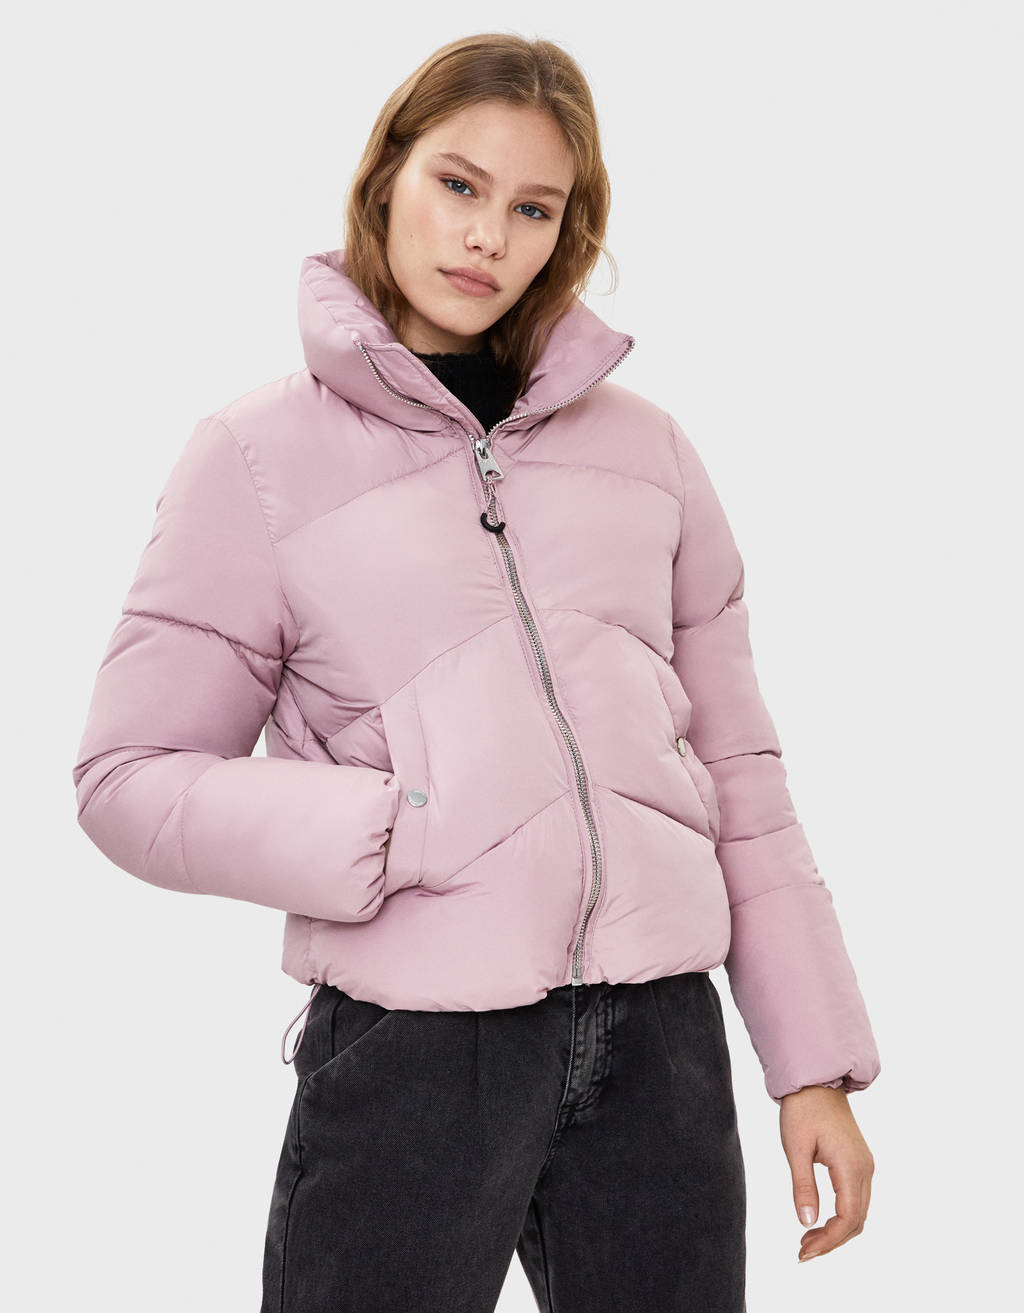 d83f7a61a1 Women's jackets - Fall 2019 | Bershka